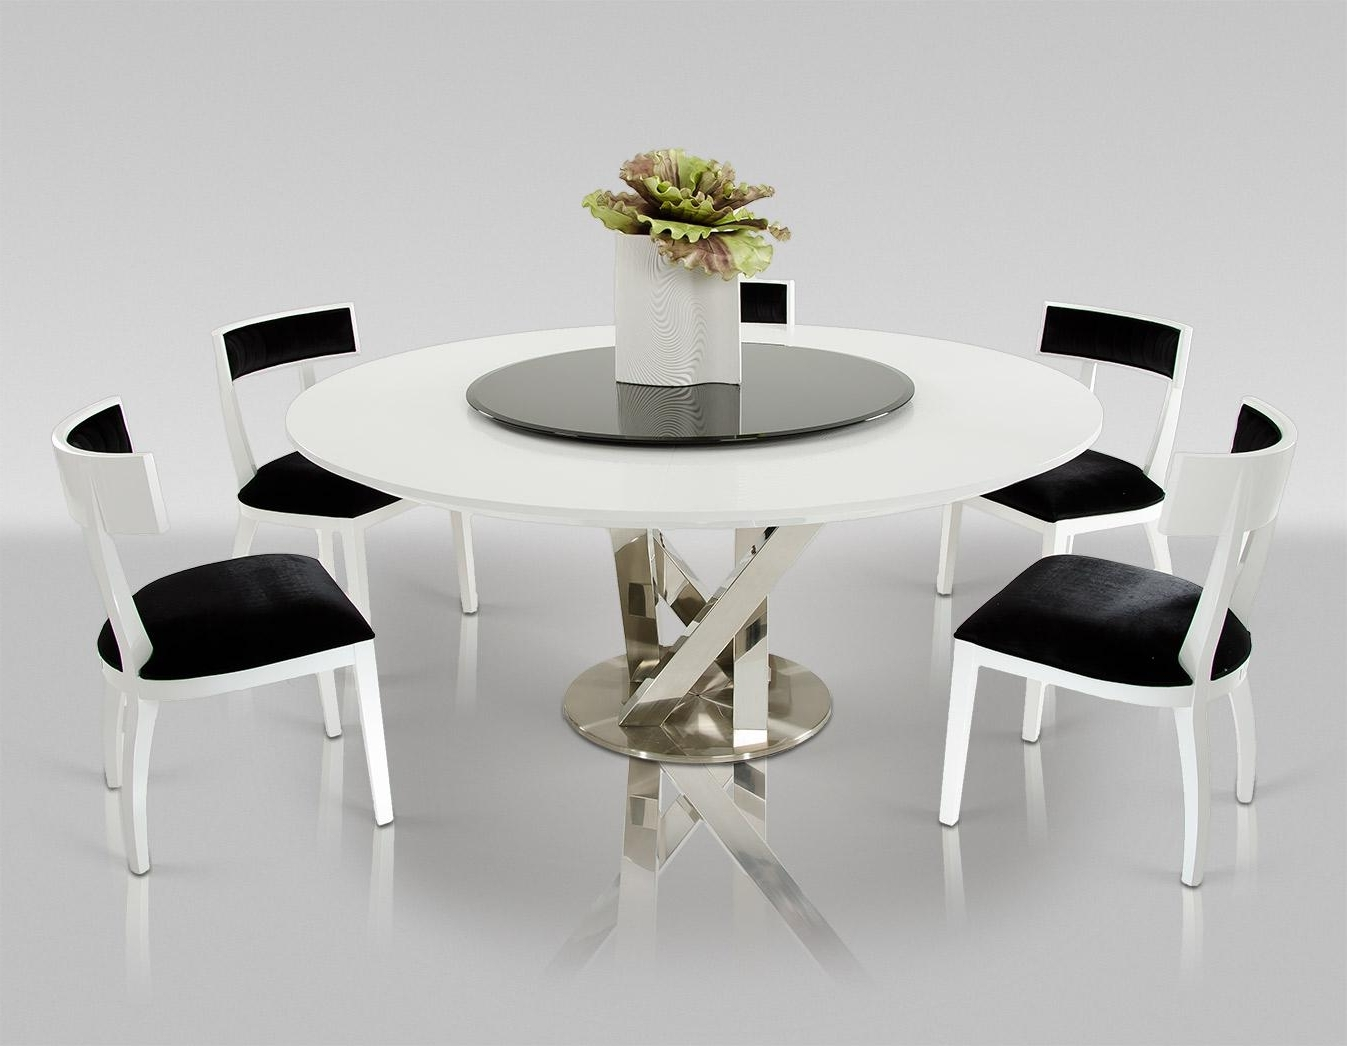 2017 Dining Tables: Amusing Large Round Modern Dining Table Round Wood With Regard To Large White Round Dining Tables (View 1 of 25)